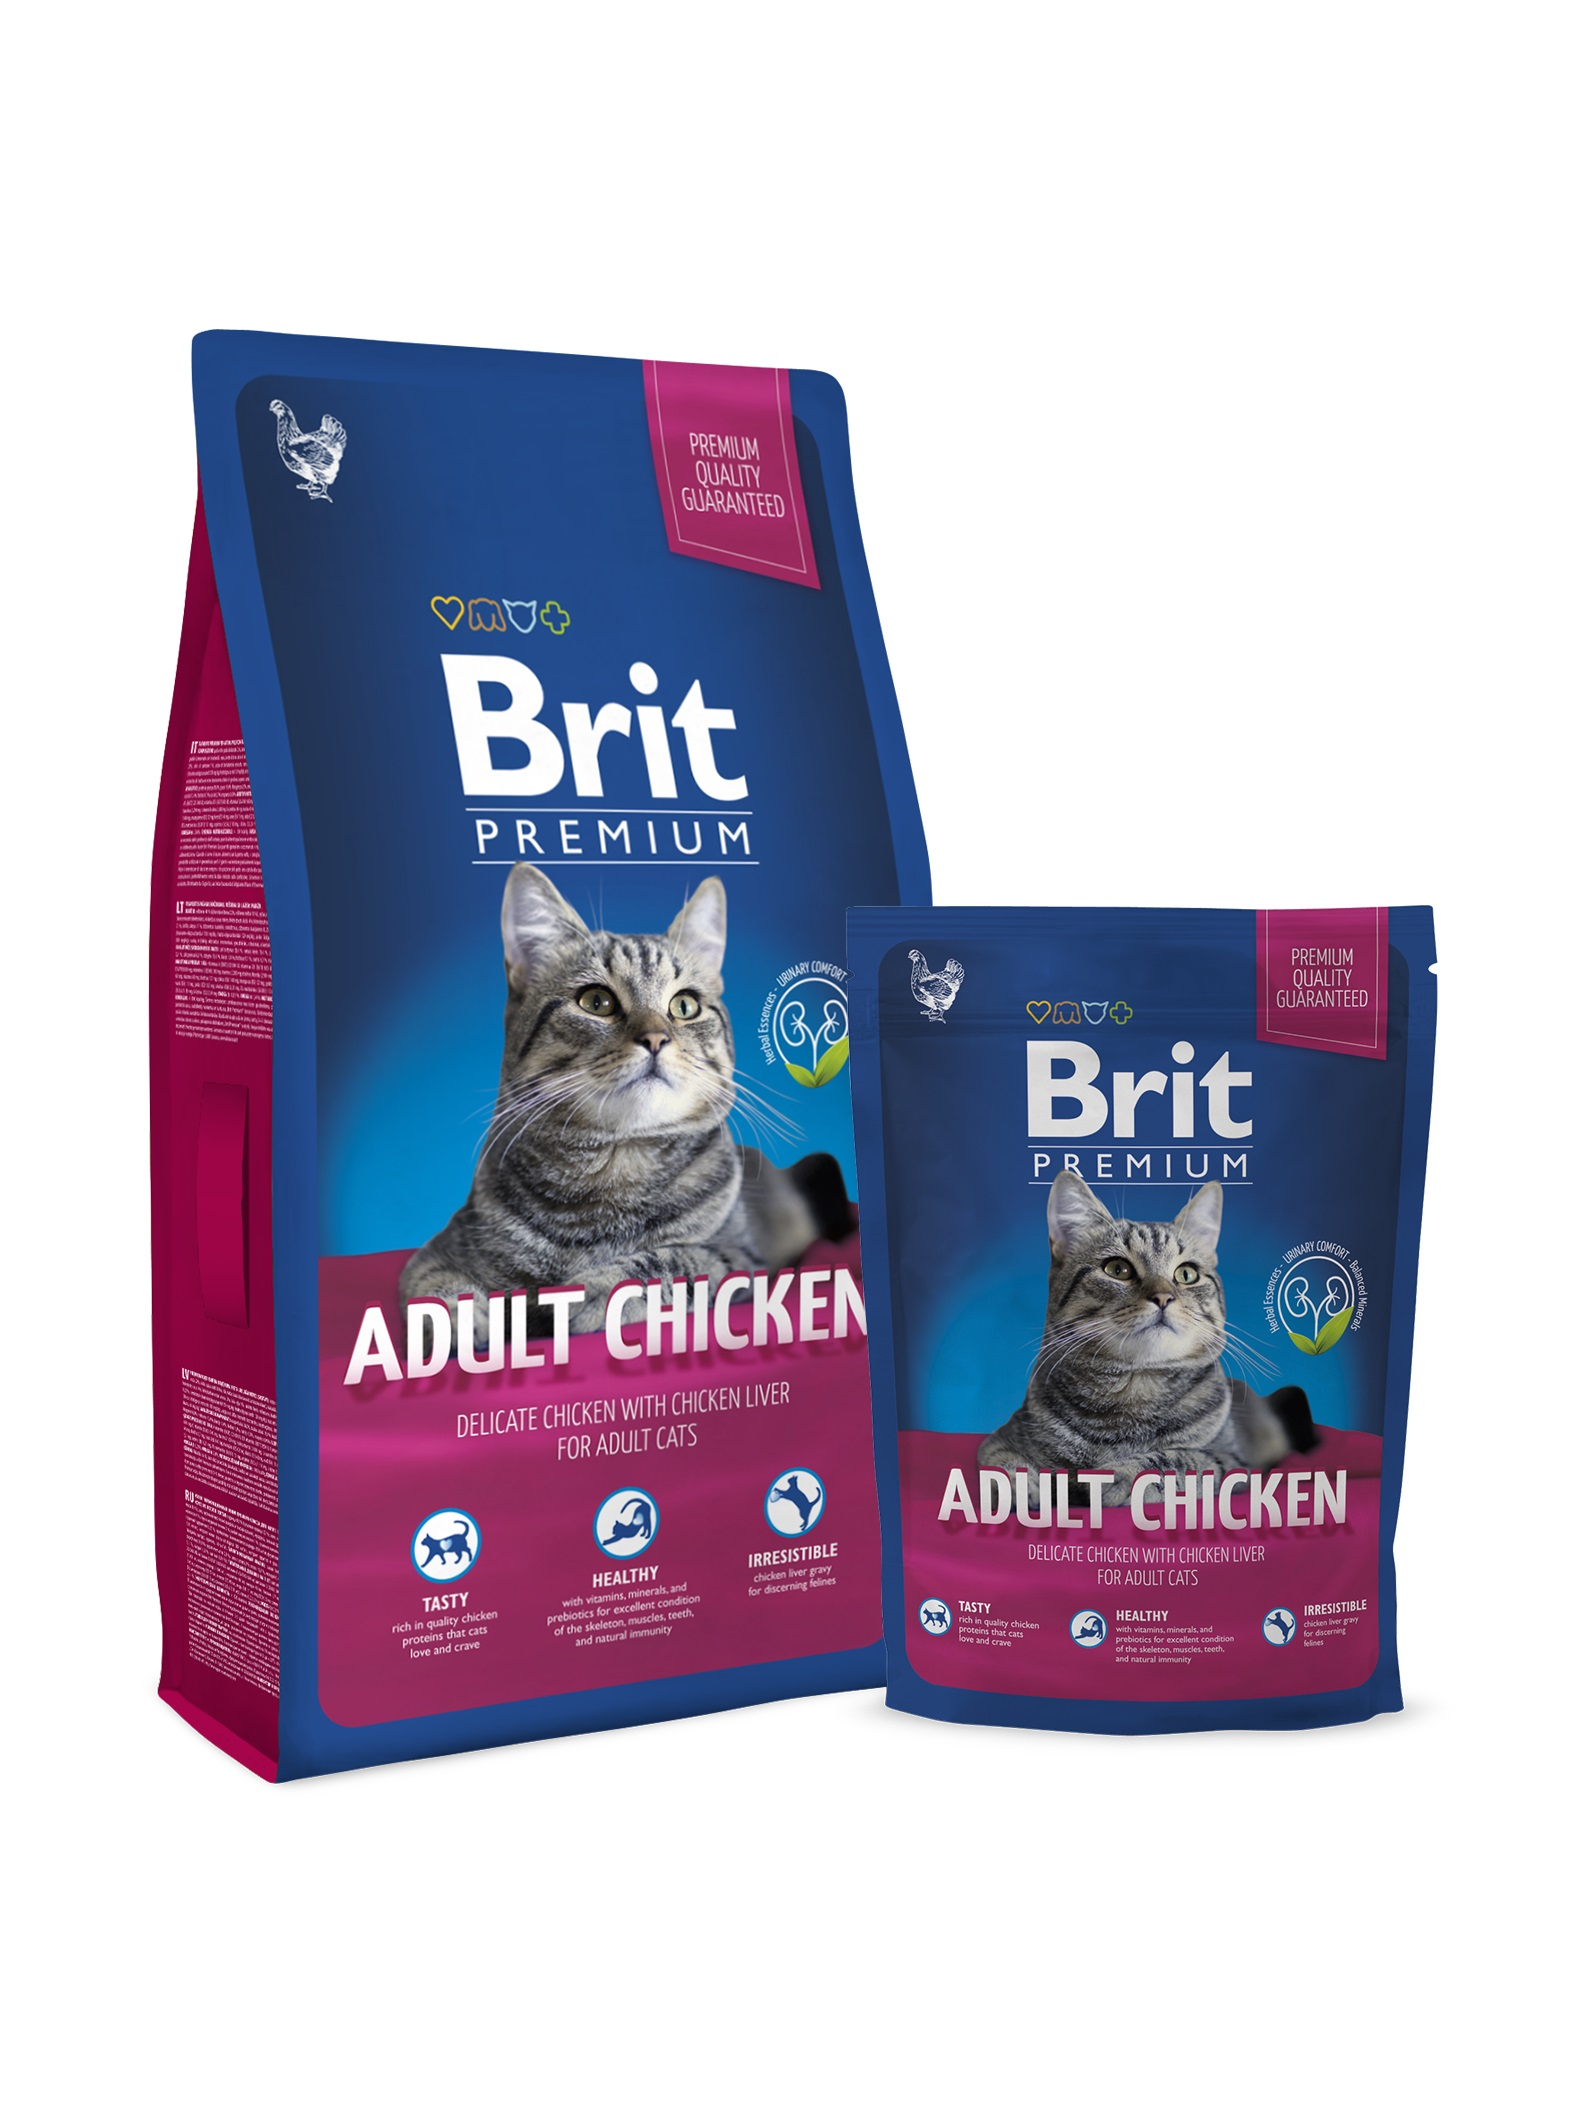 Brit Premium Cat Adult Chicken - Pet Food - Pet Store - Pet supplies